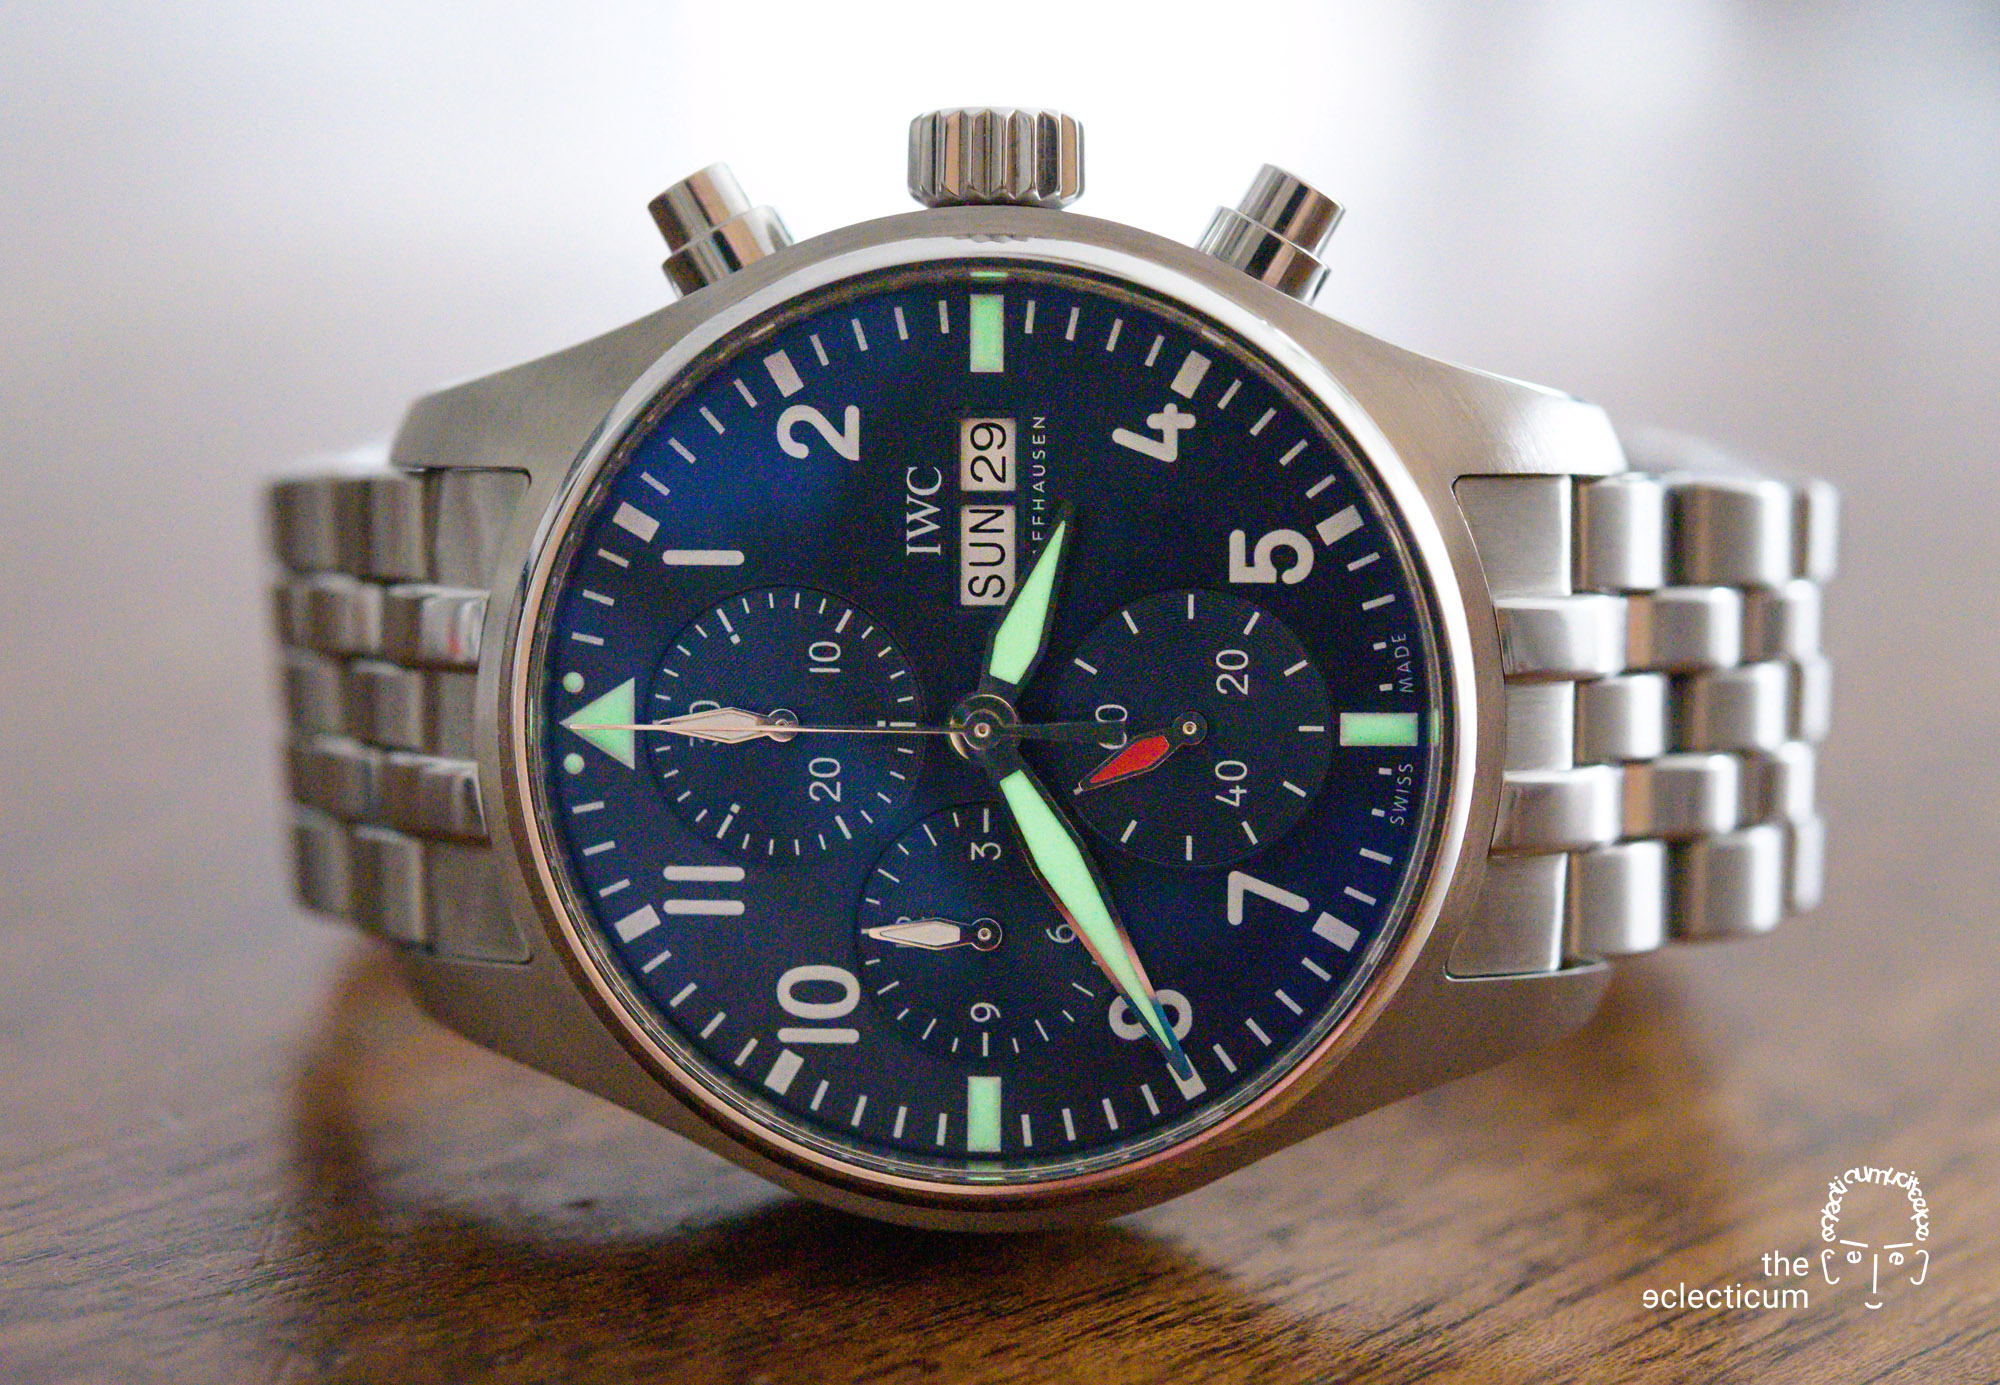 IWC Pilot's Chronograph 41mm automatic 3881 chronograph in-house lumeshot